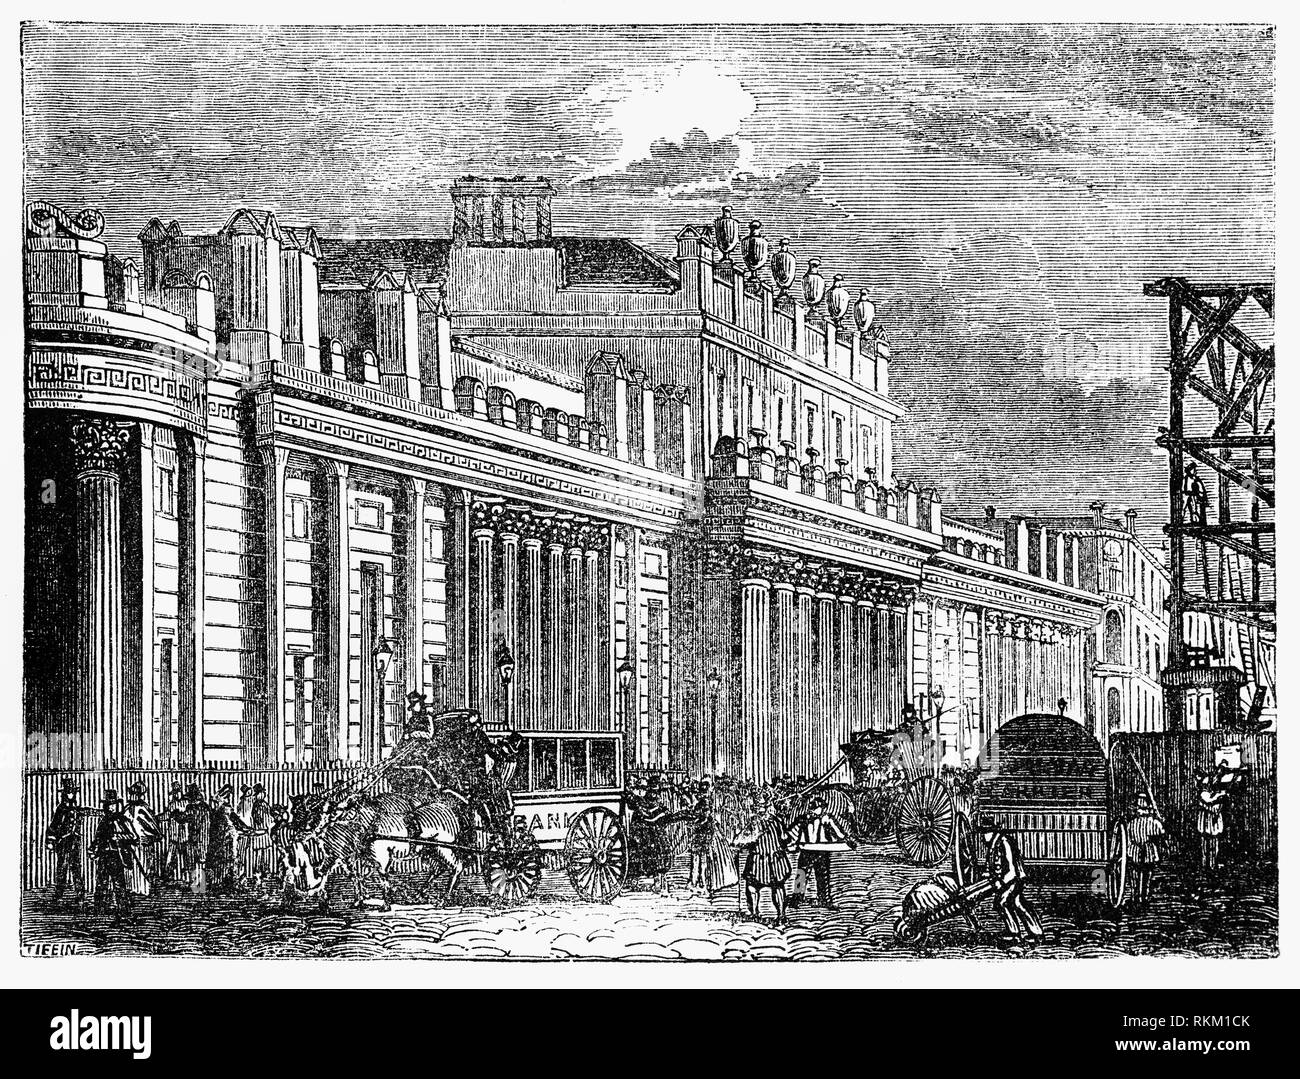 The Bank of England, the central bank of the United Kingdom, was established in 1694 to act as the English Government's banker and is the world's eighth-oldest bank. It was privately owned by stockholders from its foundation in 1694 until it was nationalised in 1946. The Bank moved to its current location in London's Threadneedle Street in 1734, and thereafter slowly acquired neighbouring land to create the site necessary for erecting the Bank's original home at this location, under the direction of its chief architect Sir John Soane, between 1790 and 1827. - Stock Image